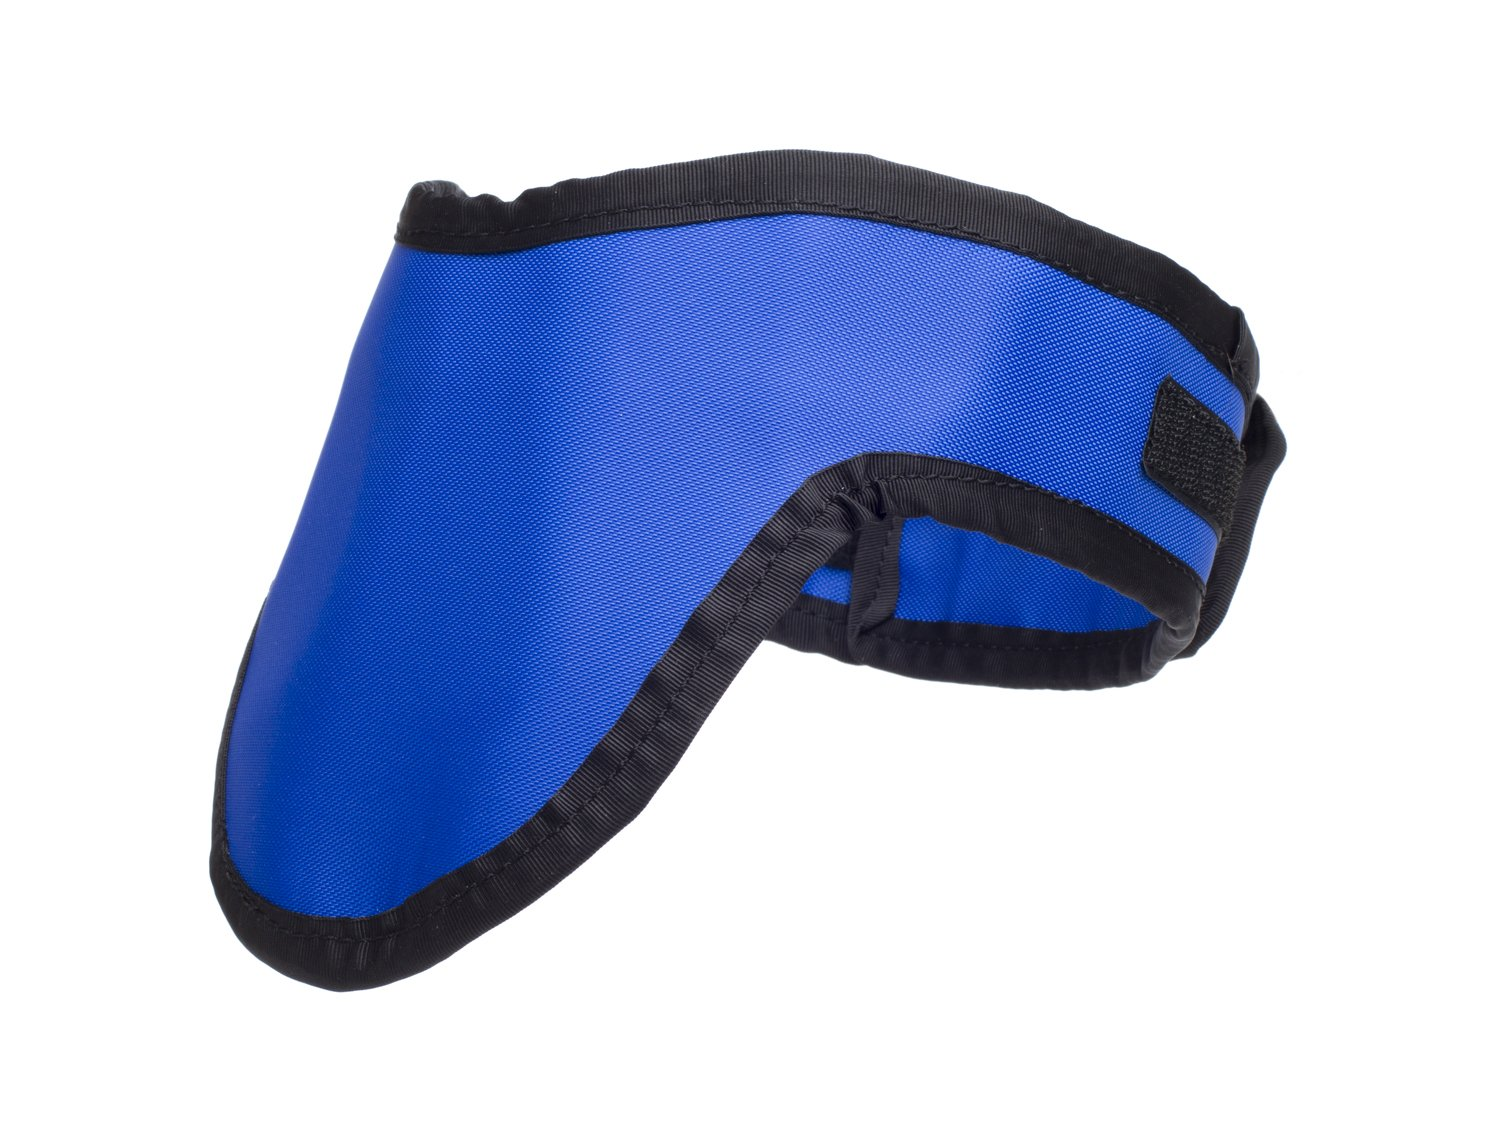 Thyroid Shield Light Weight Radiation Protection 0.5mm Pb Lead Equivlancy  in Royal Blue: Amazon.in: Health & Personal Care